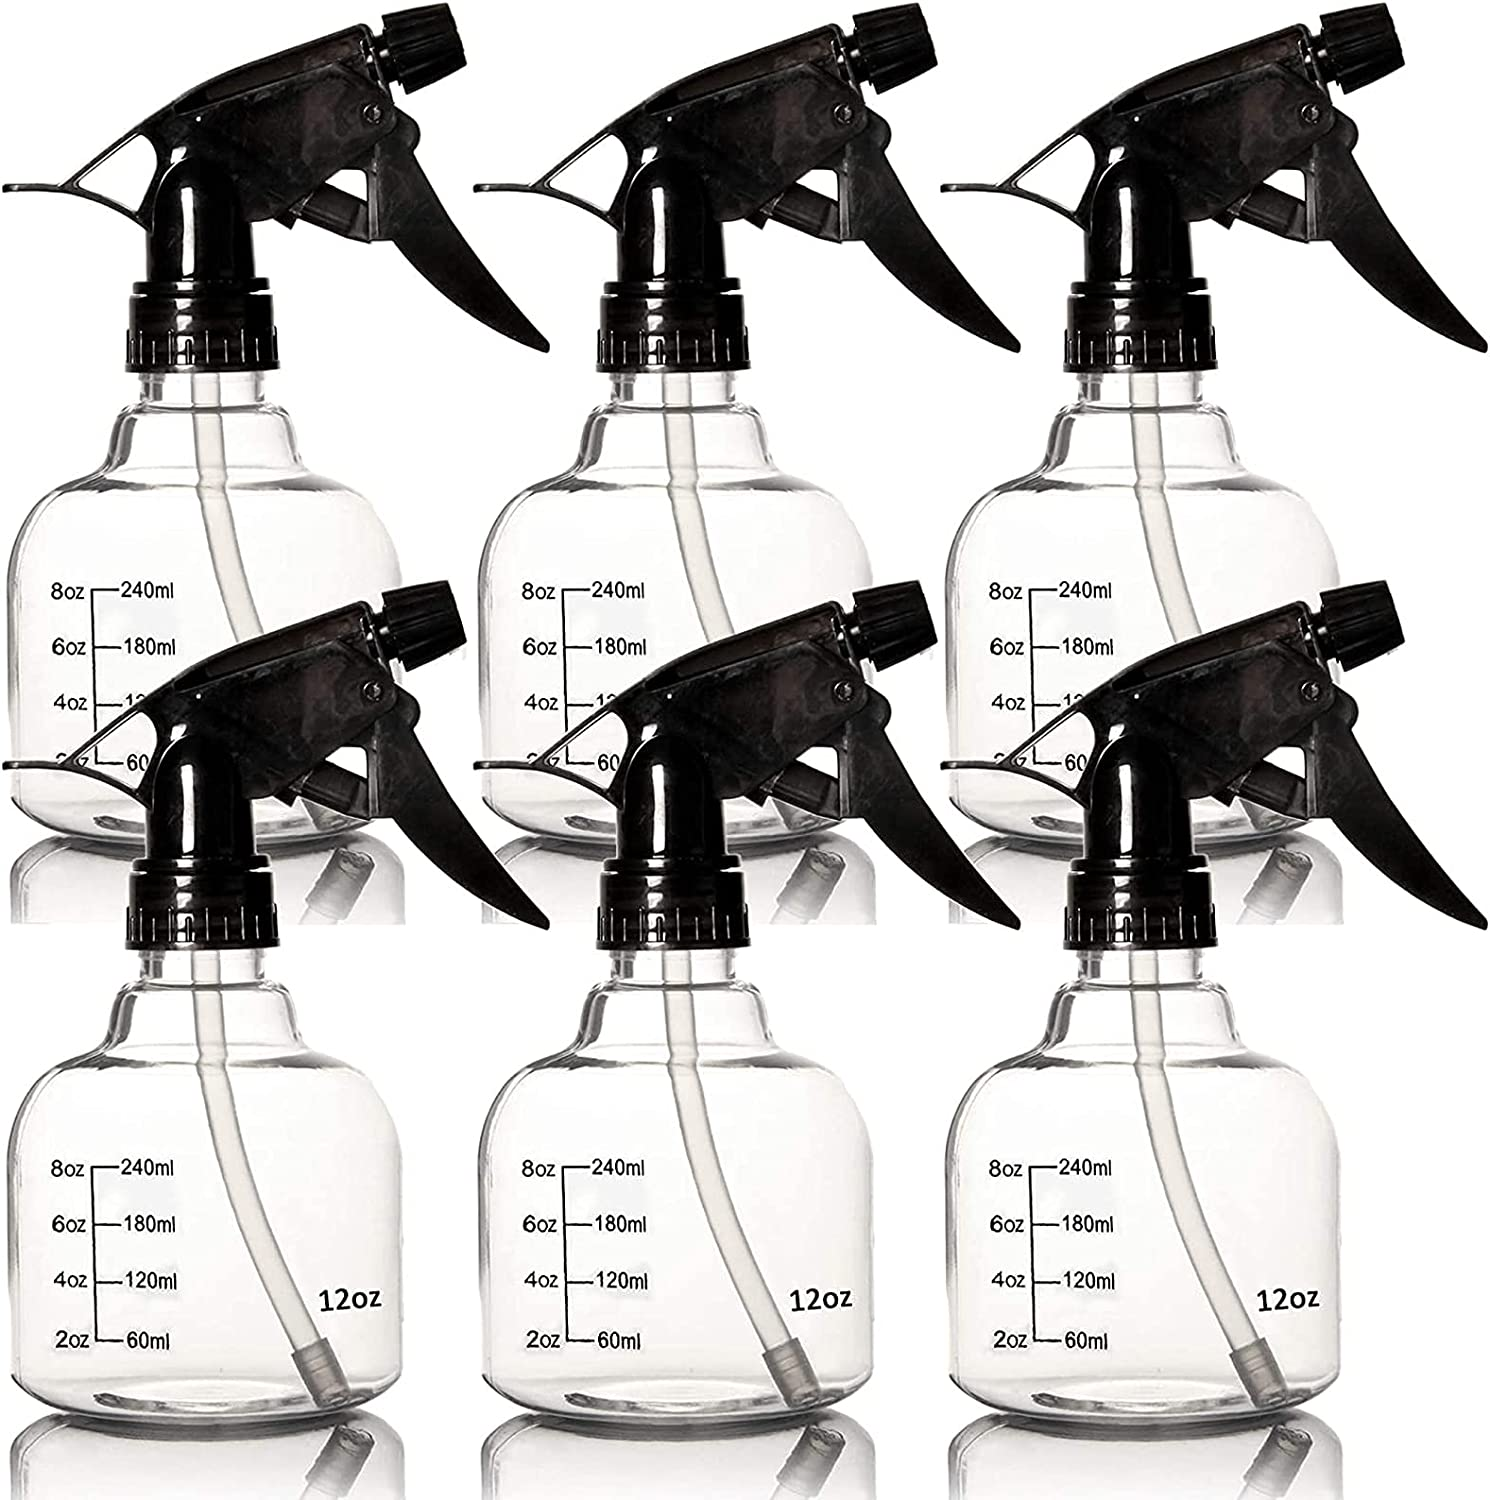 6 Empty Plastic Spray Bottles Fresno Mall Department store Hair for and Cleani